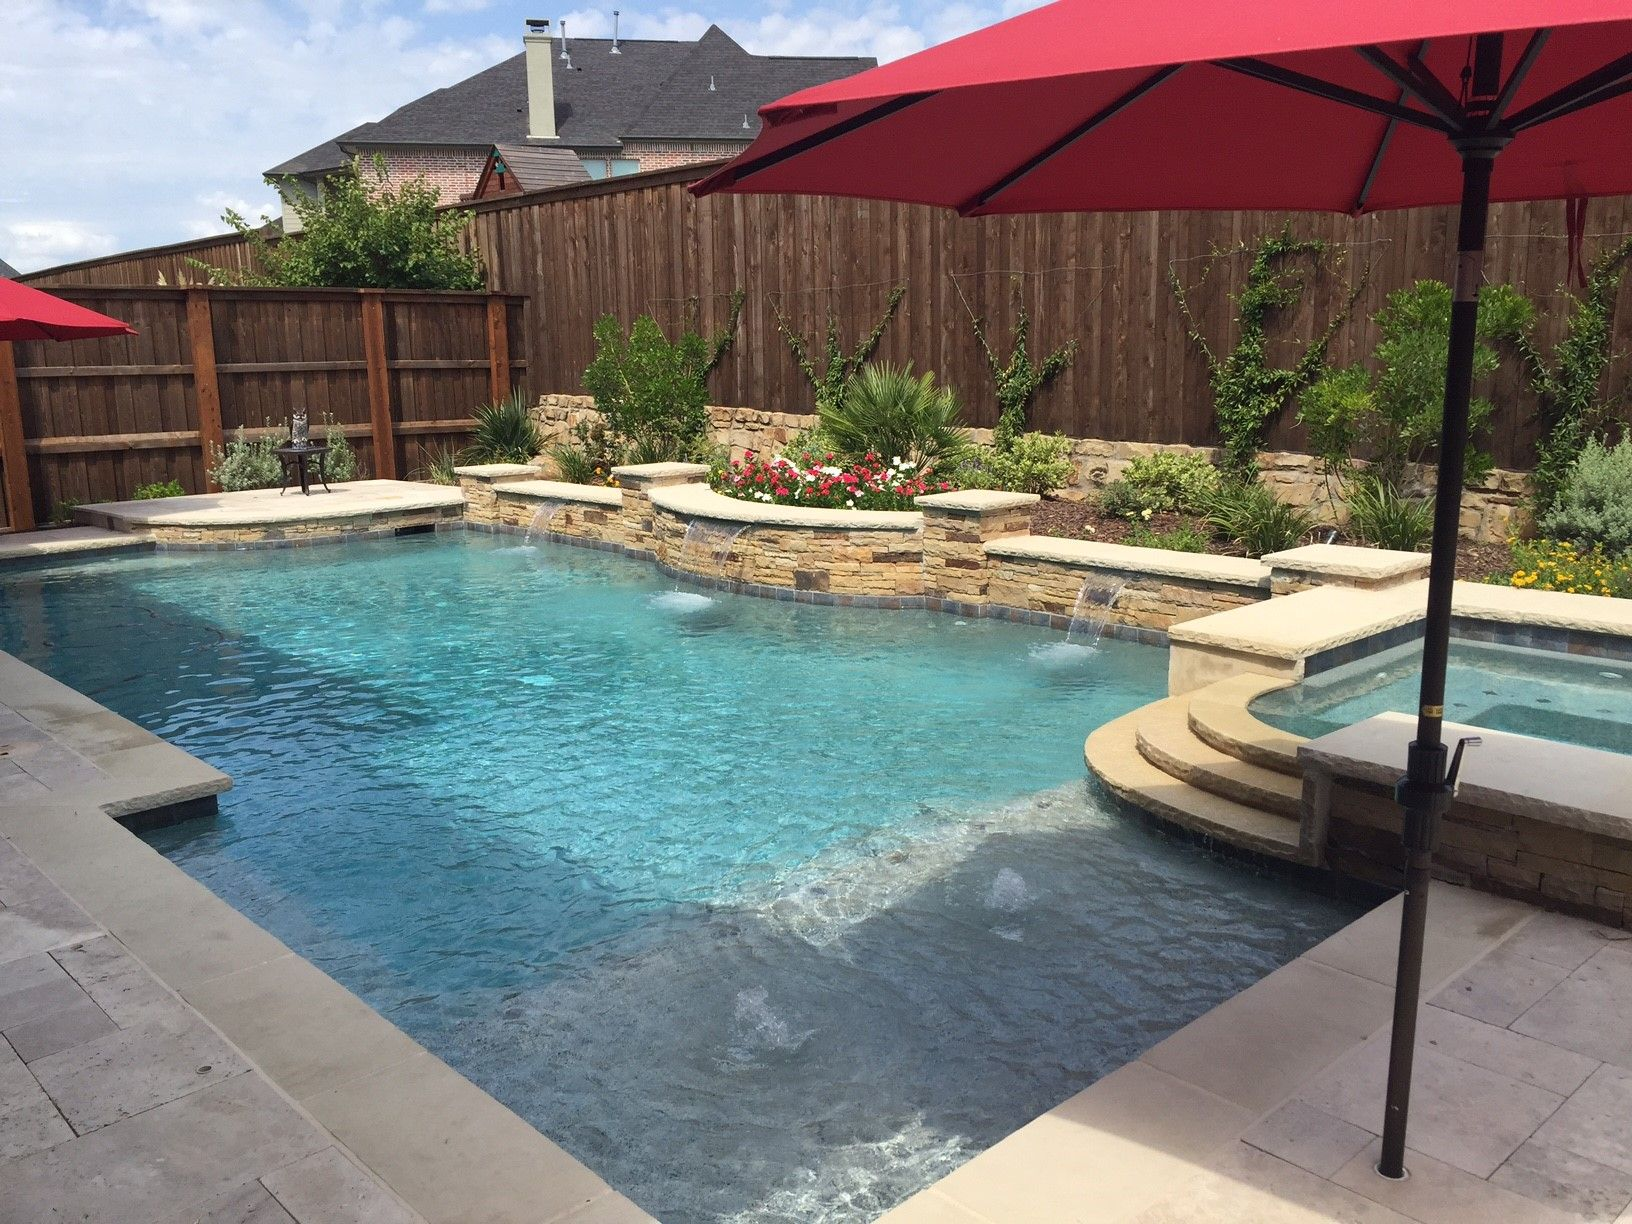 Design Pool Ideas best 25 swimming pool designs ideas on pinterest dallas formal pools rockwall custom spa leuders